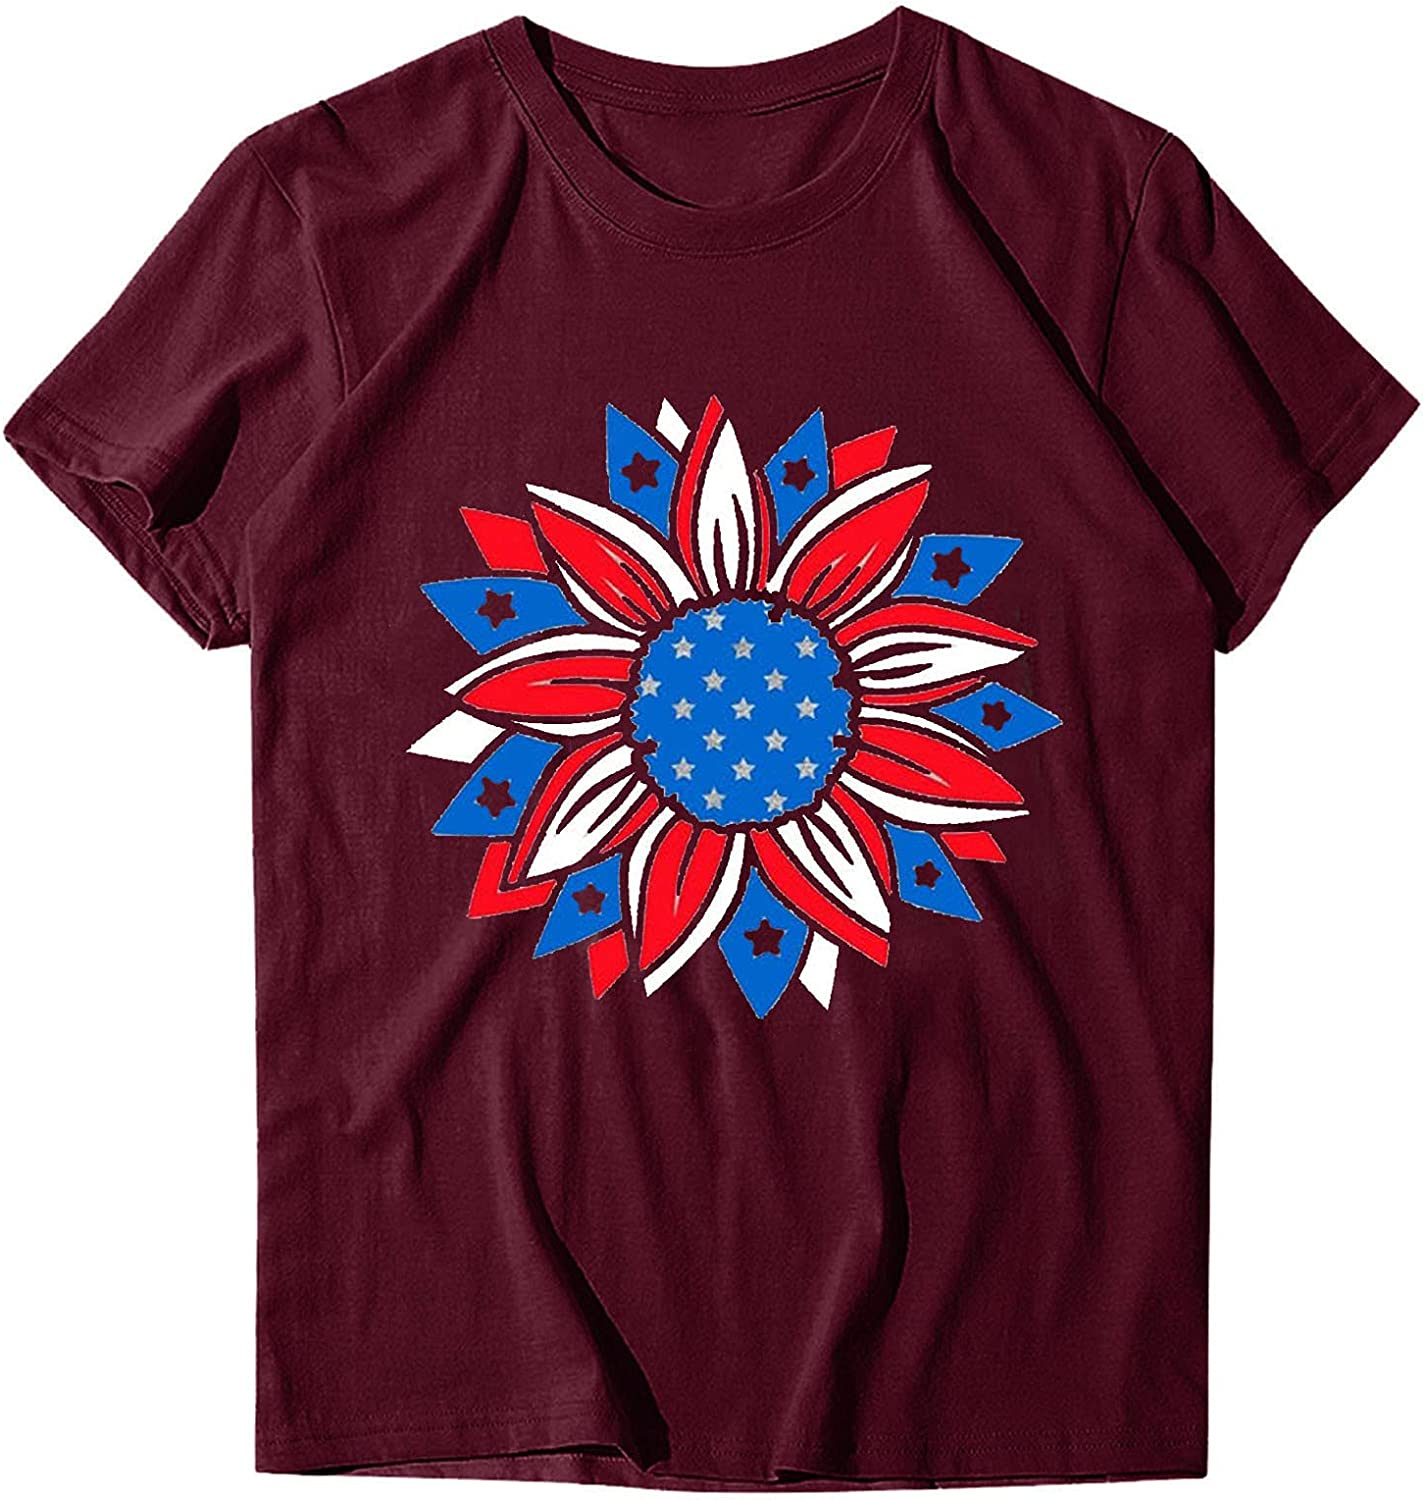 ManxiVoo Womens Tops Year-end Store annual account Casual Sunflower Shi Short Tee Sleeve Print